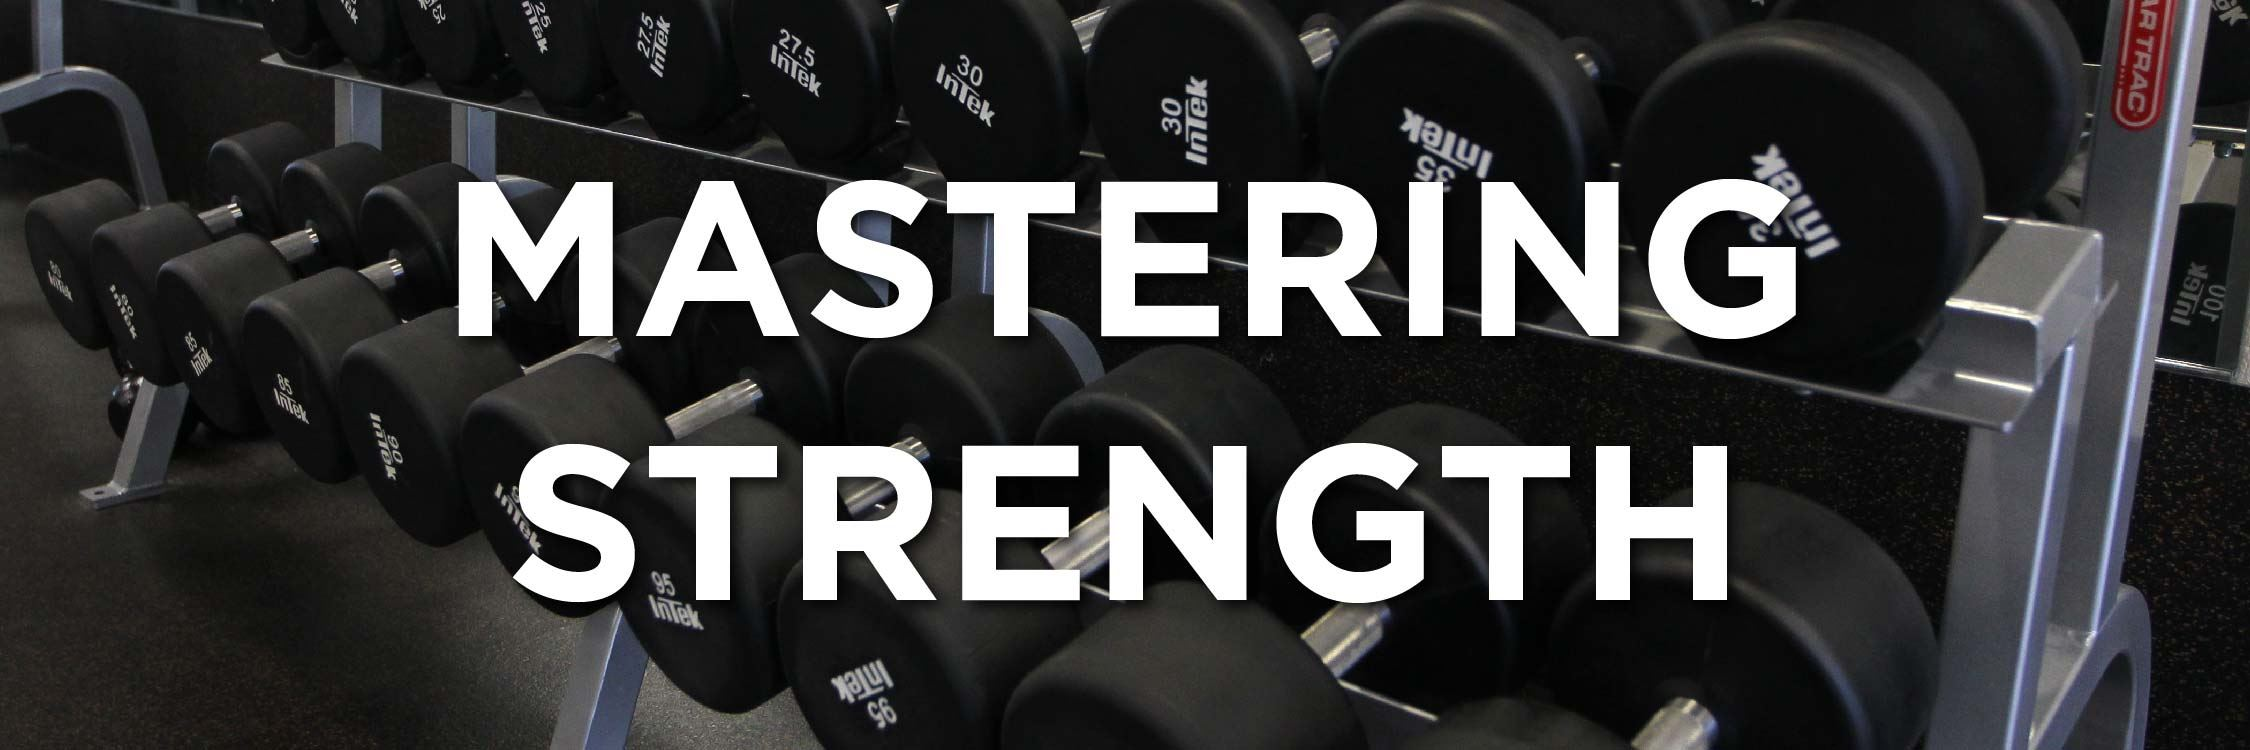 Mastering Strength Web Strip-07